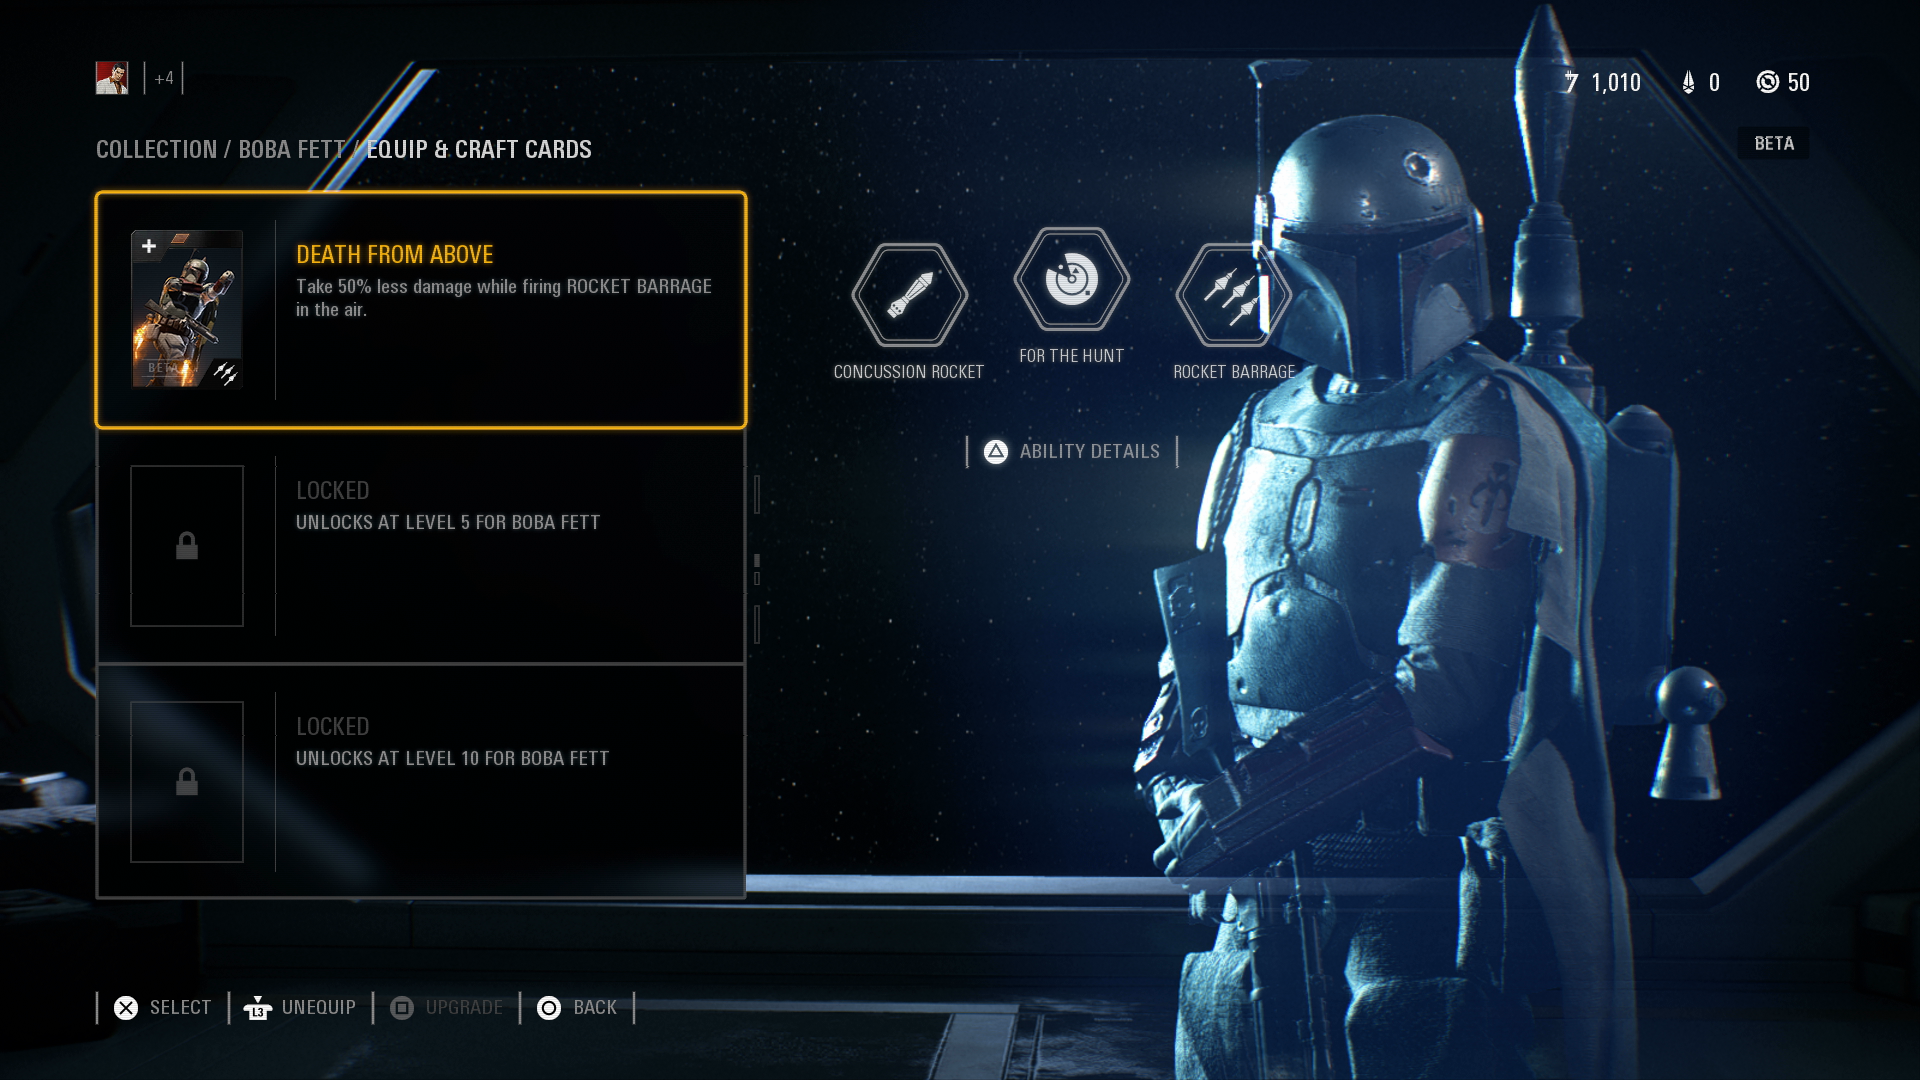 EA tweaks Star Wars Battlefront II's loot box drops following beta feedback